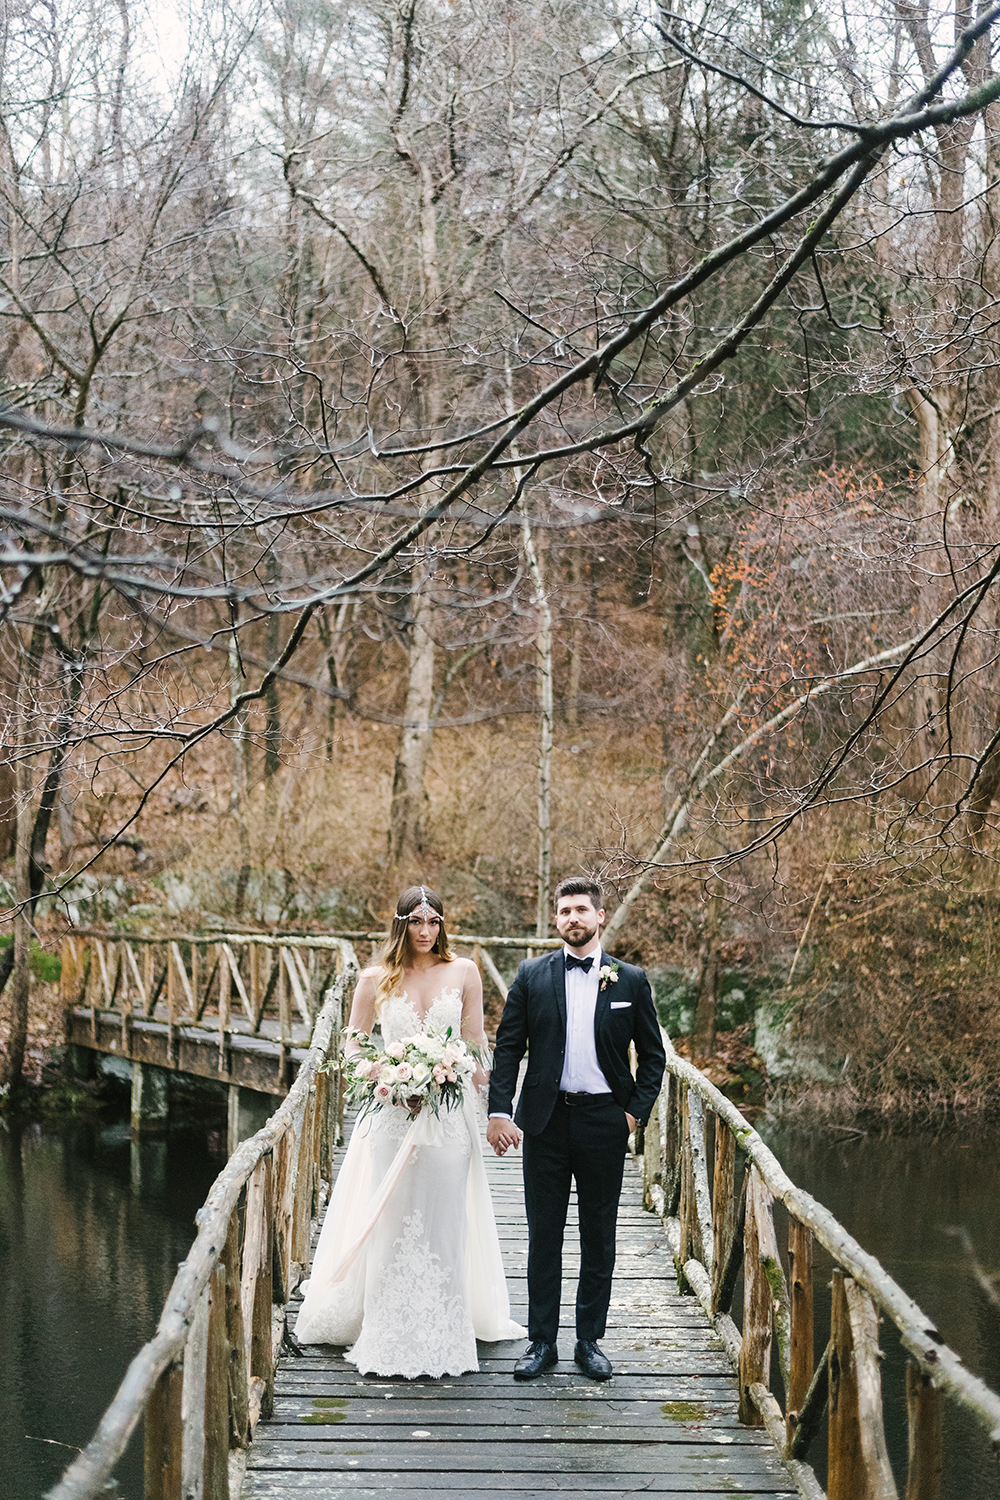 Upstate New York Wedding Ideas with Copper - photo by Alicia King Photography http://ruffledblog.com/upstate-new-york-wedding-ideas-with-copper